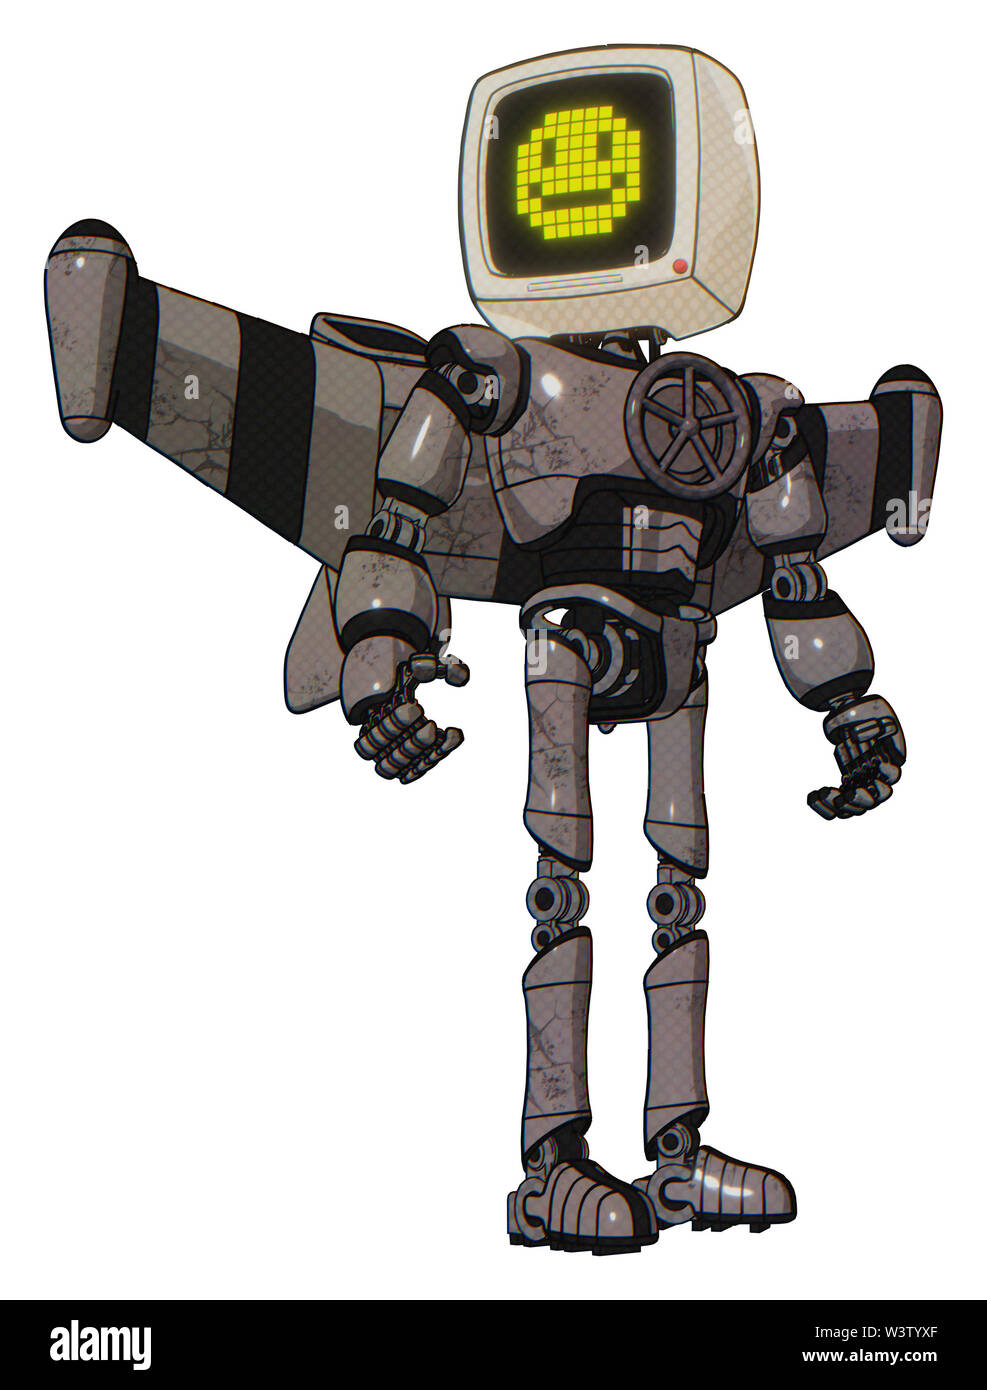 Robot containing elements: old computer monitor, pixel design of yellow happy face, light chest exoshielding, chest valve crank, stellar jet wing rock - Stock Image